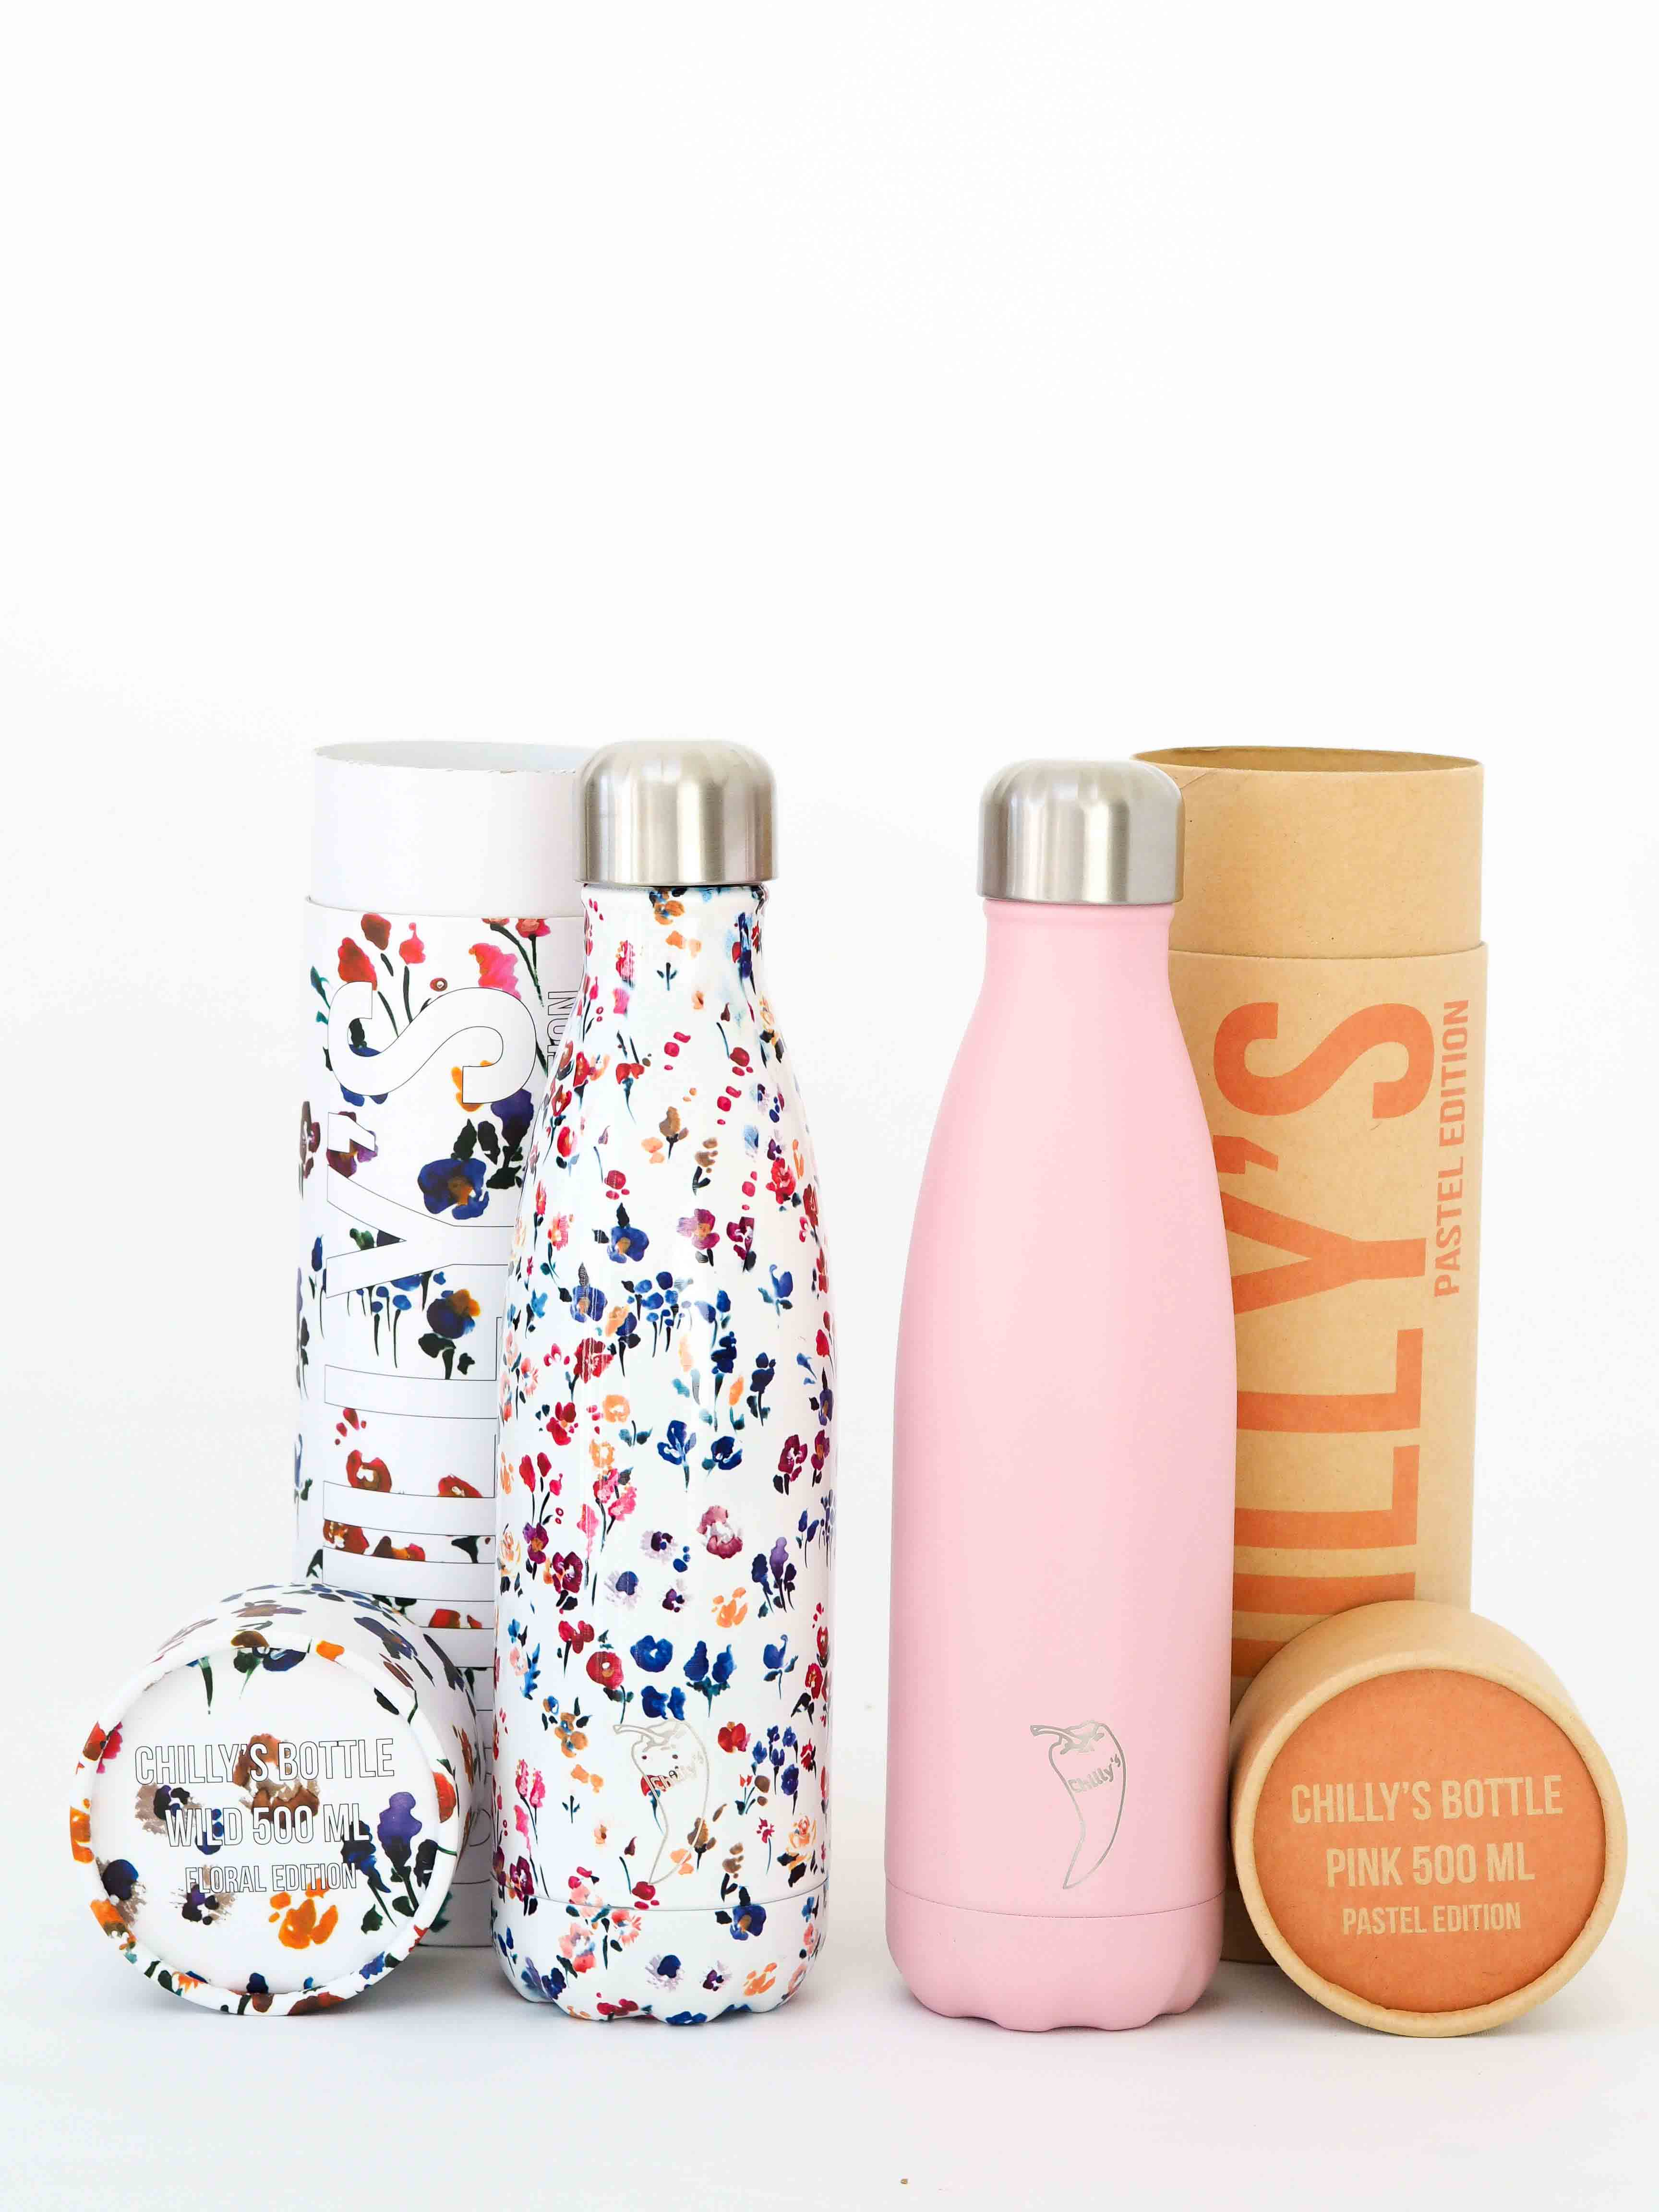 Chillys Bottle Floral Wild Pink